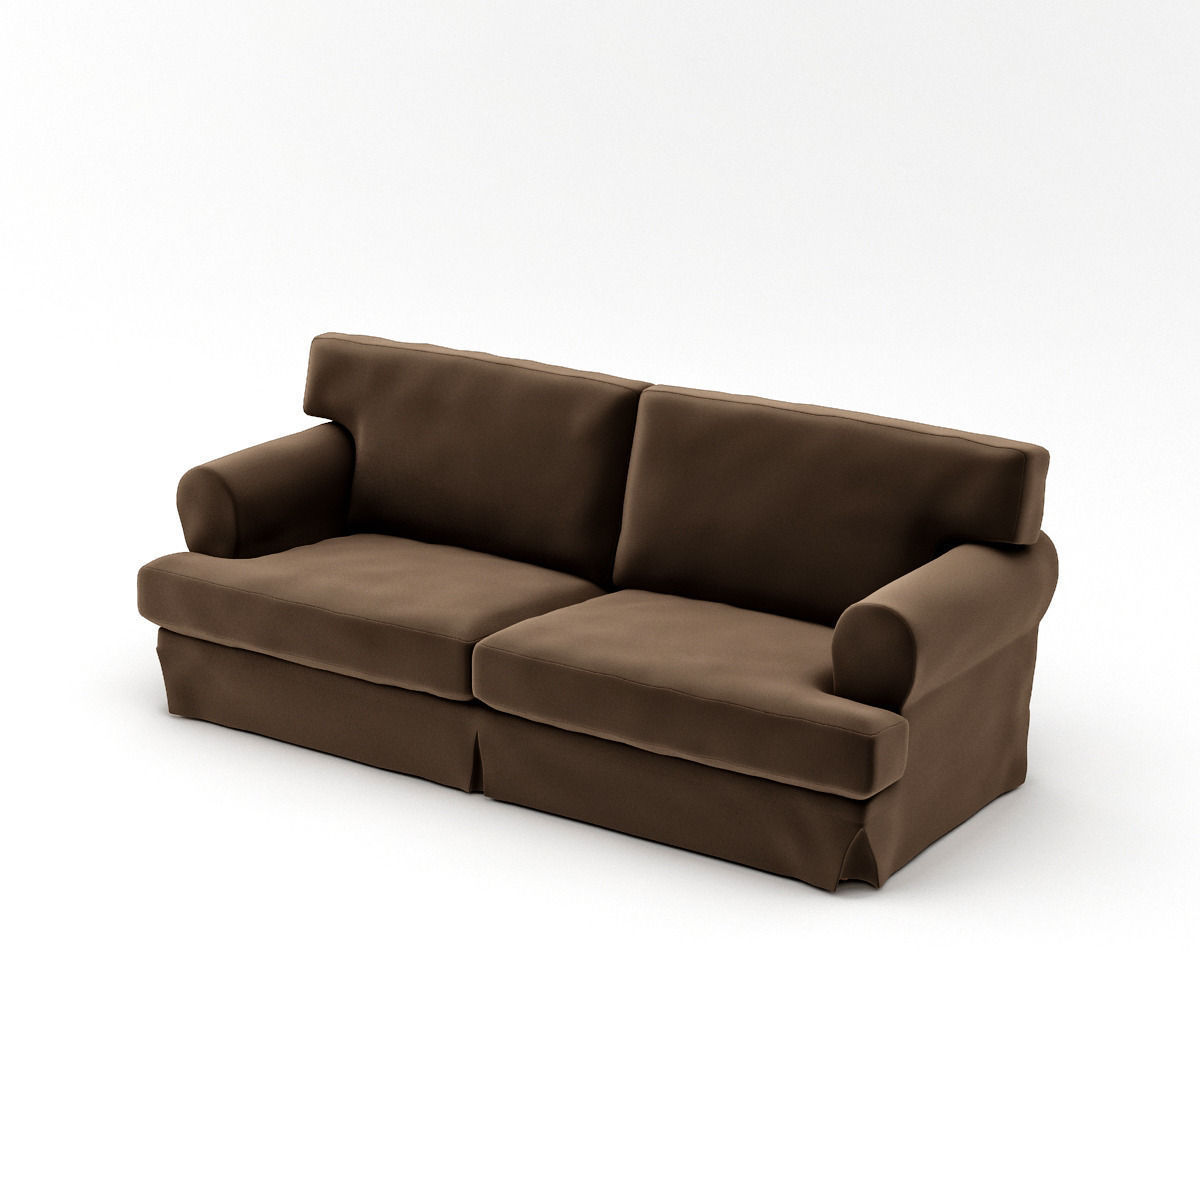 Ikea ekeskog sofa 3d model max for Sofa 3d model